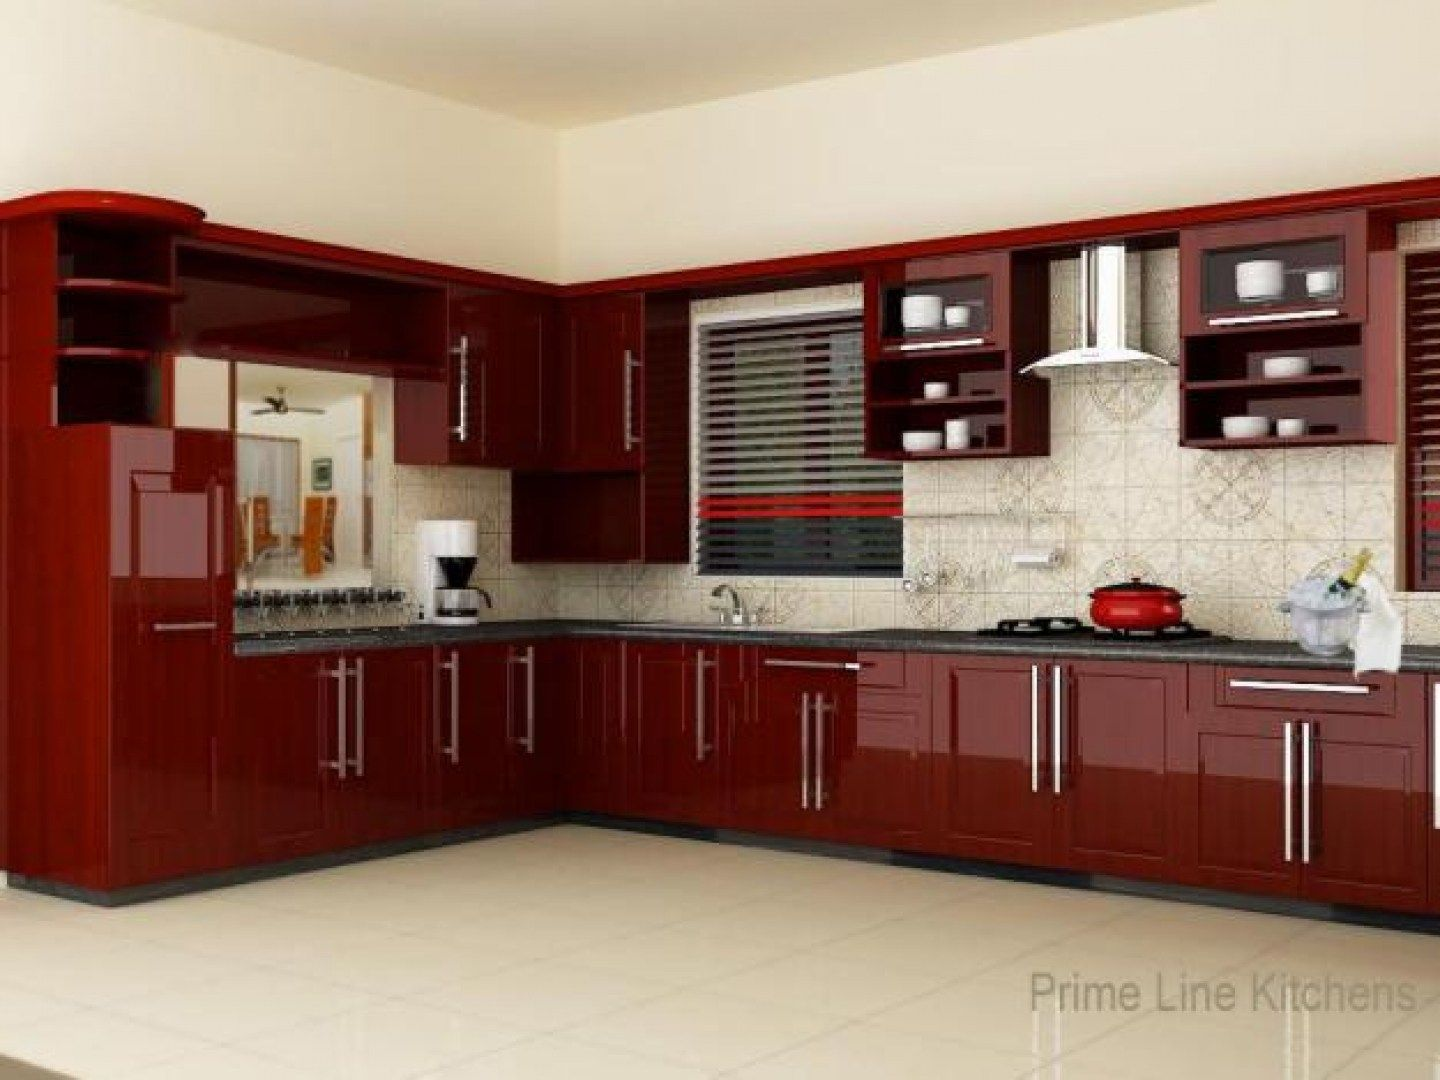 Kitchen design ideas kitchen woodwork designs hyderabad for Latest kitchen units designs